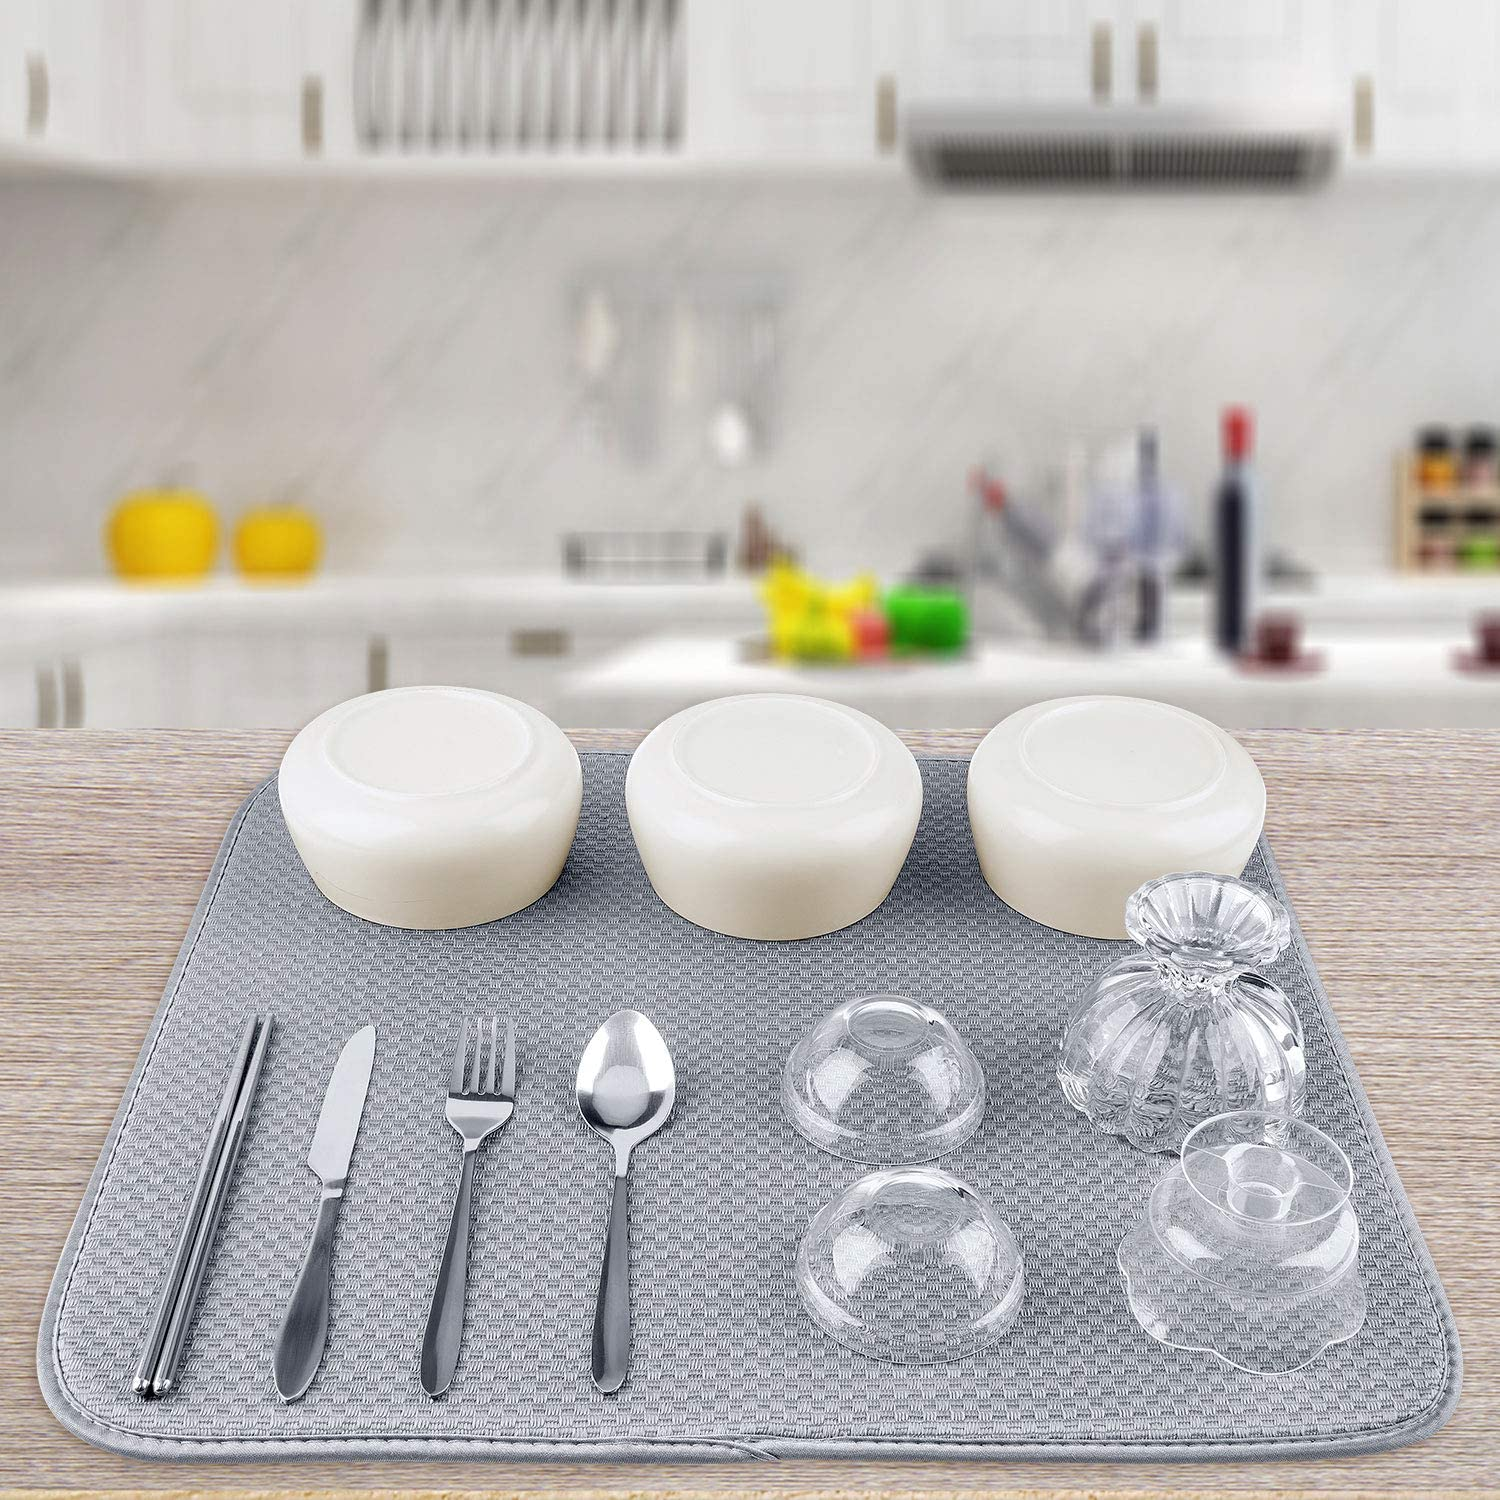 Awpeye Dish Drying Mats for Kitchen